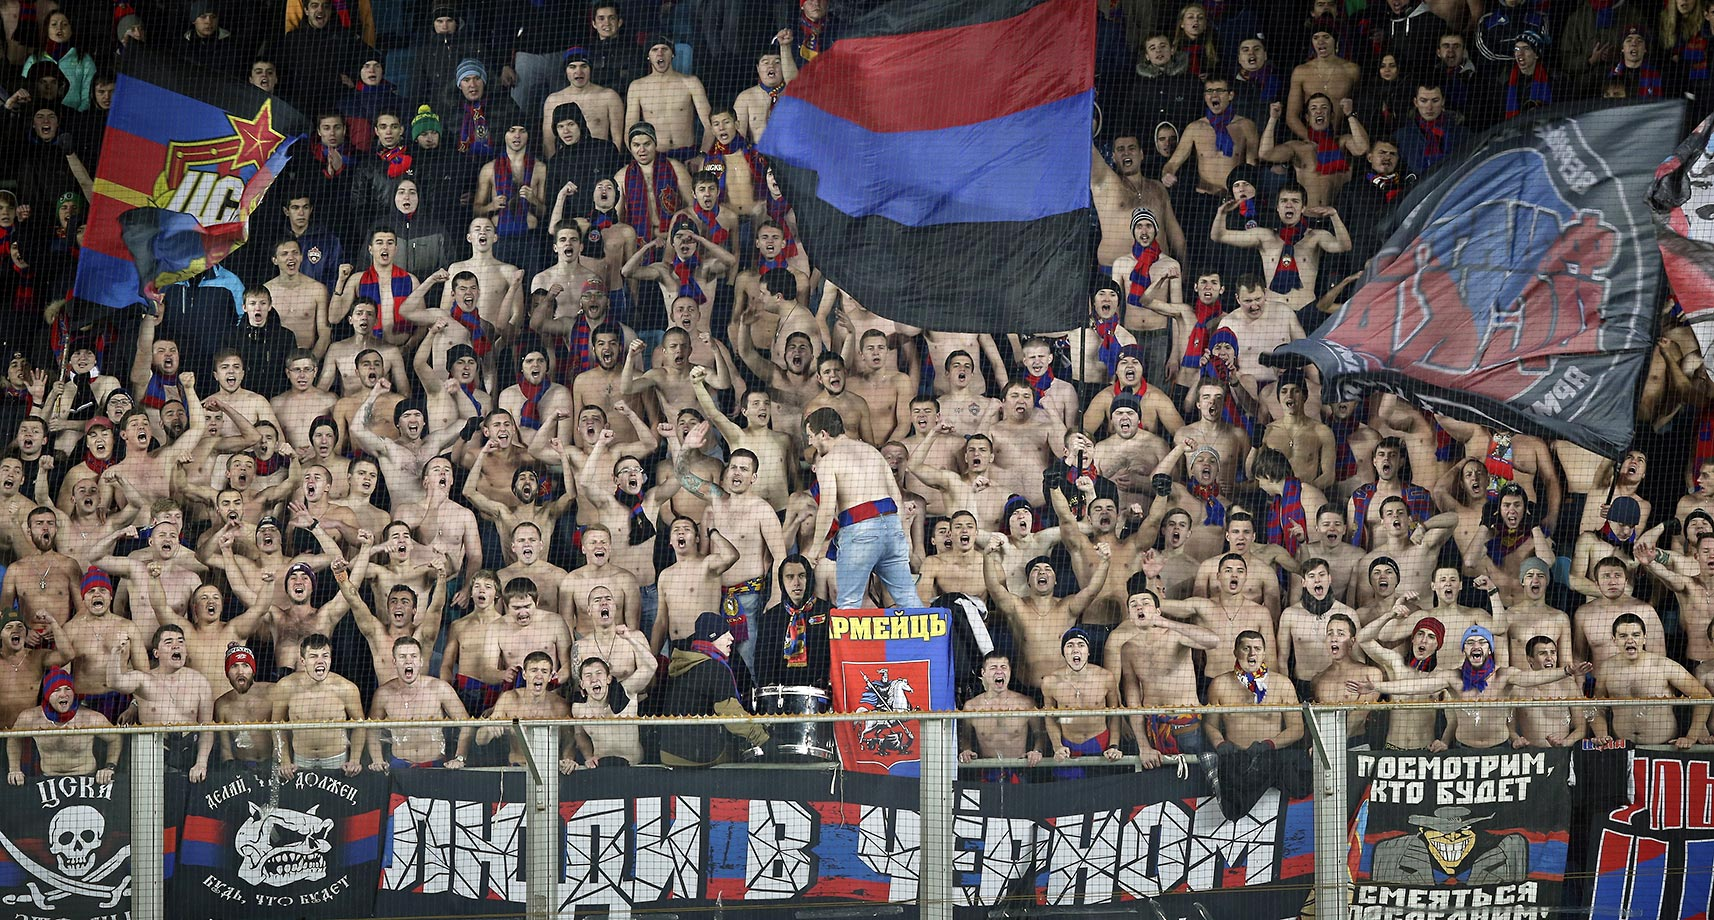 CSKA Moscow fans, most of them without their shirts on, cheer for their team in freezing temps during the Champions League Group B soccer match between CSKA Moscow and Manchester United.